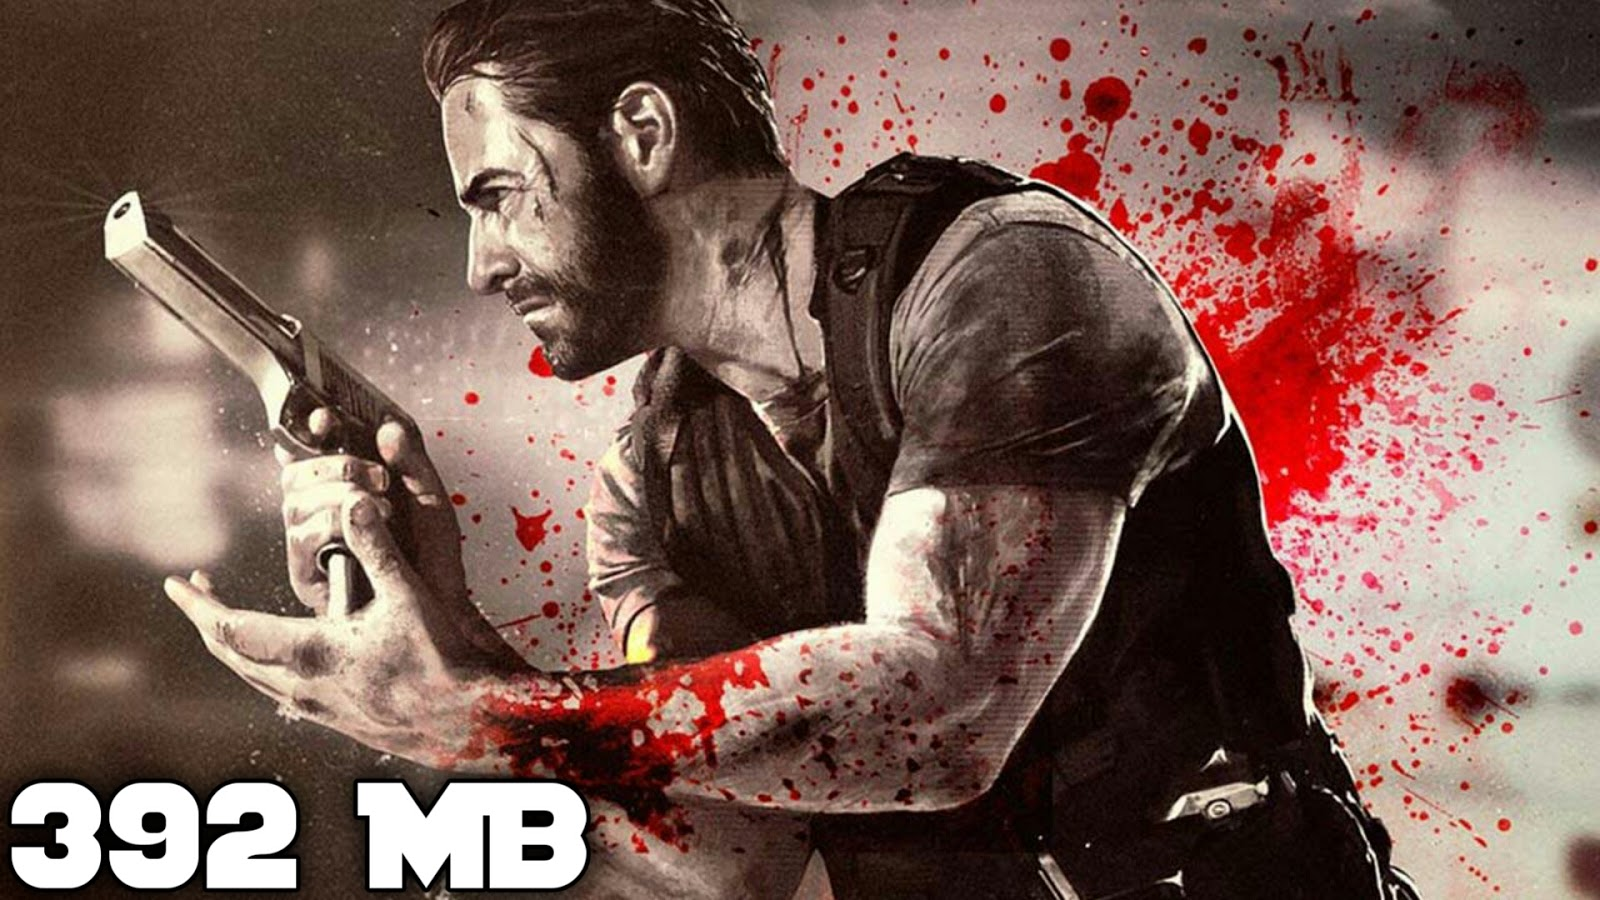 MAX PAYNE ANDROID 392 MB HIGHLY COMPRESSED